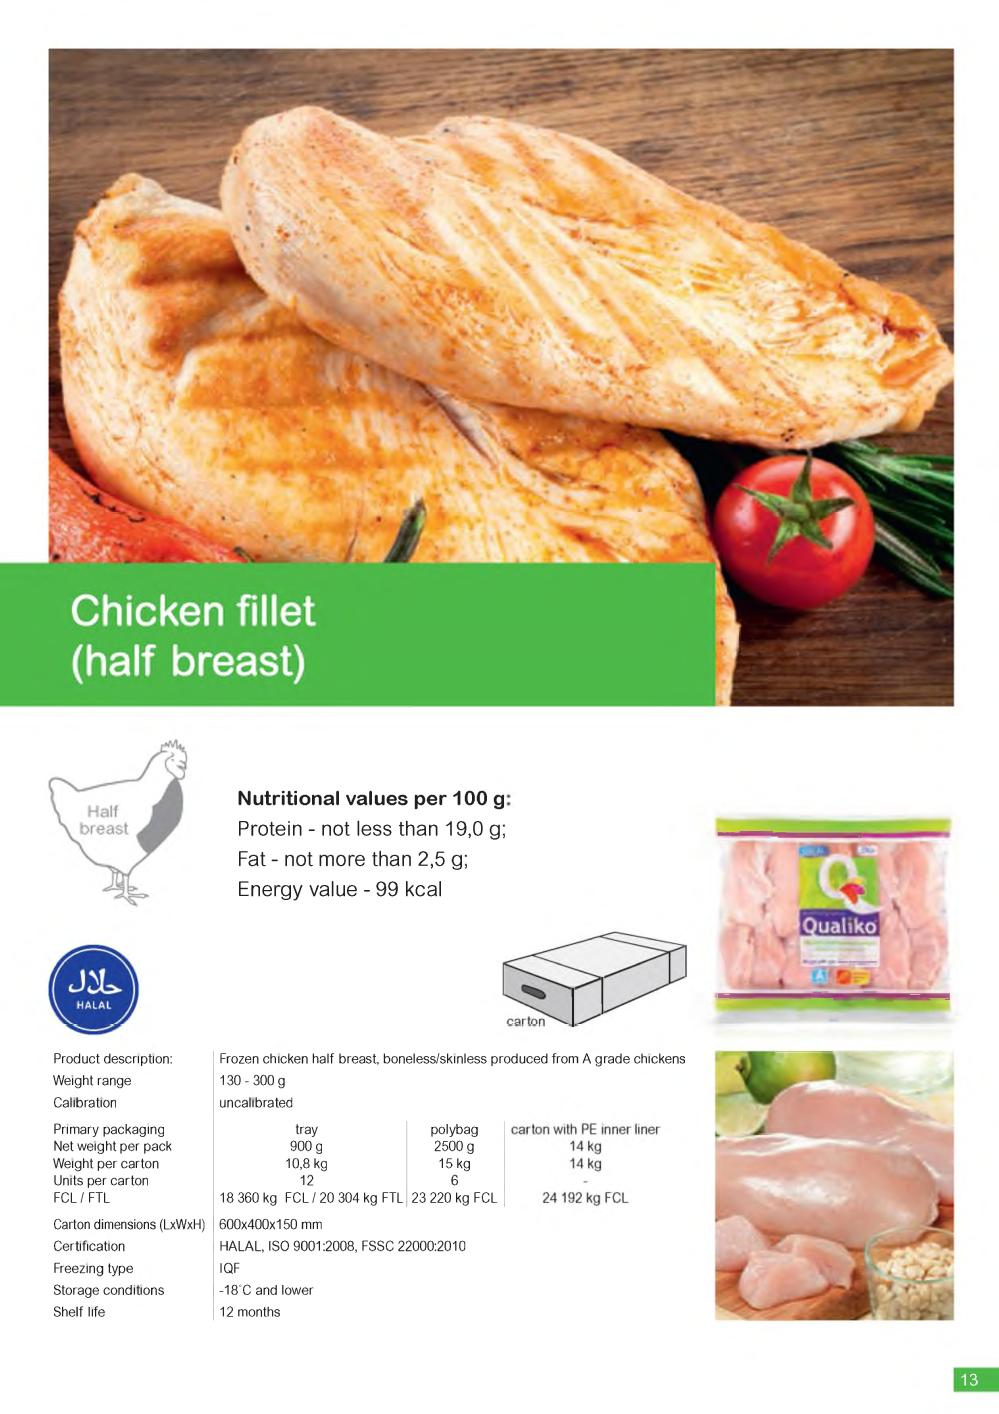 Chicken inner fillet recipes